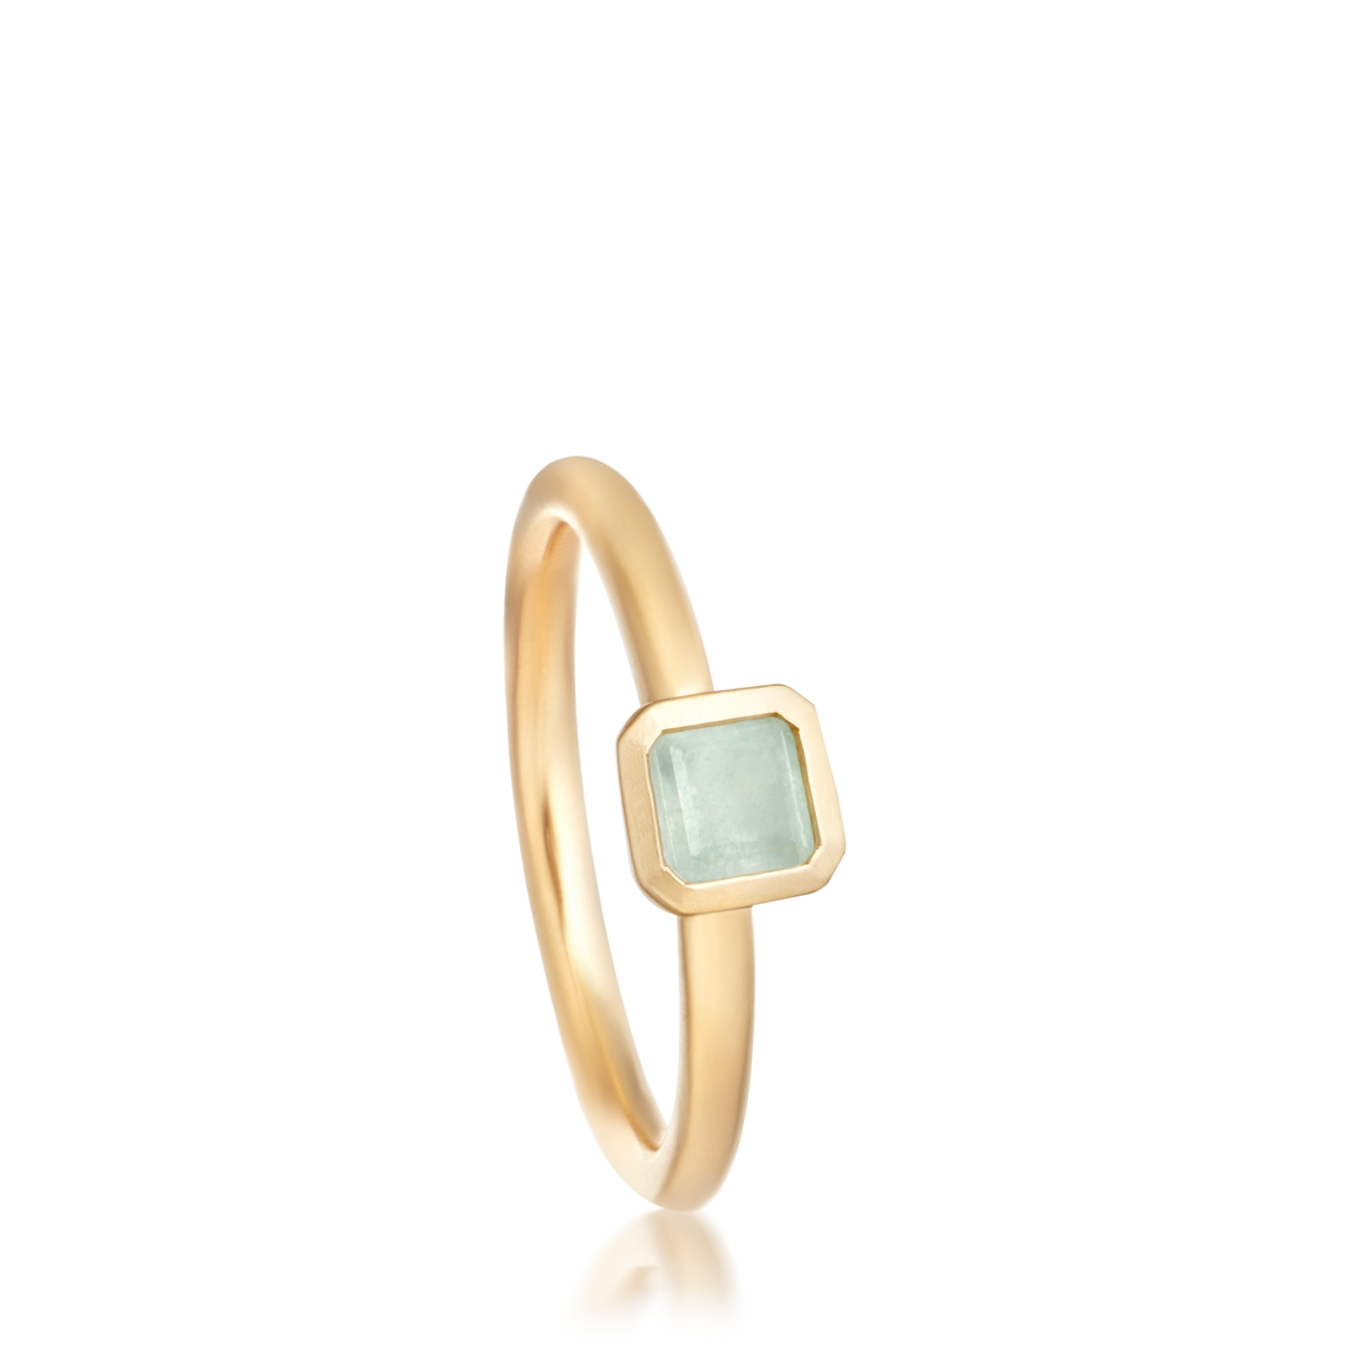 Aqua Quartz Square Prismic Ring